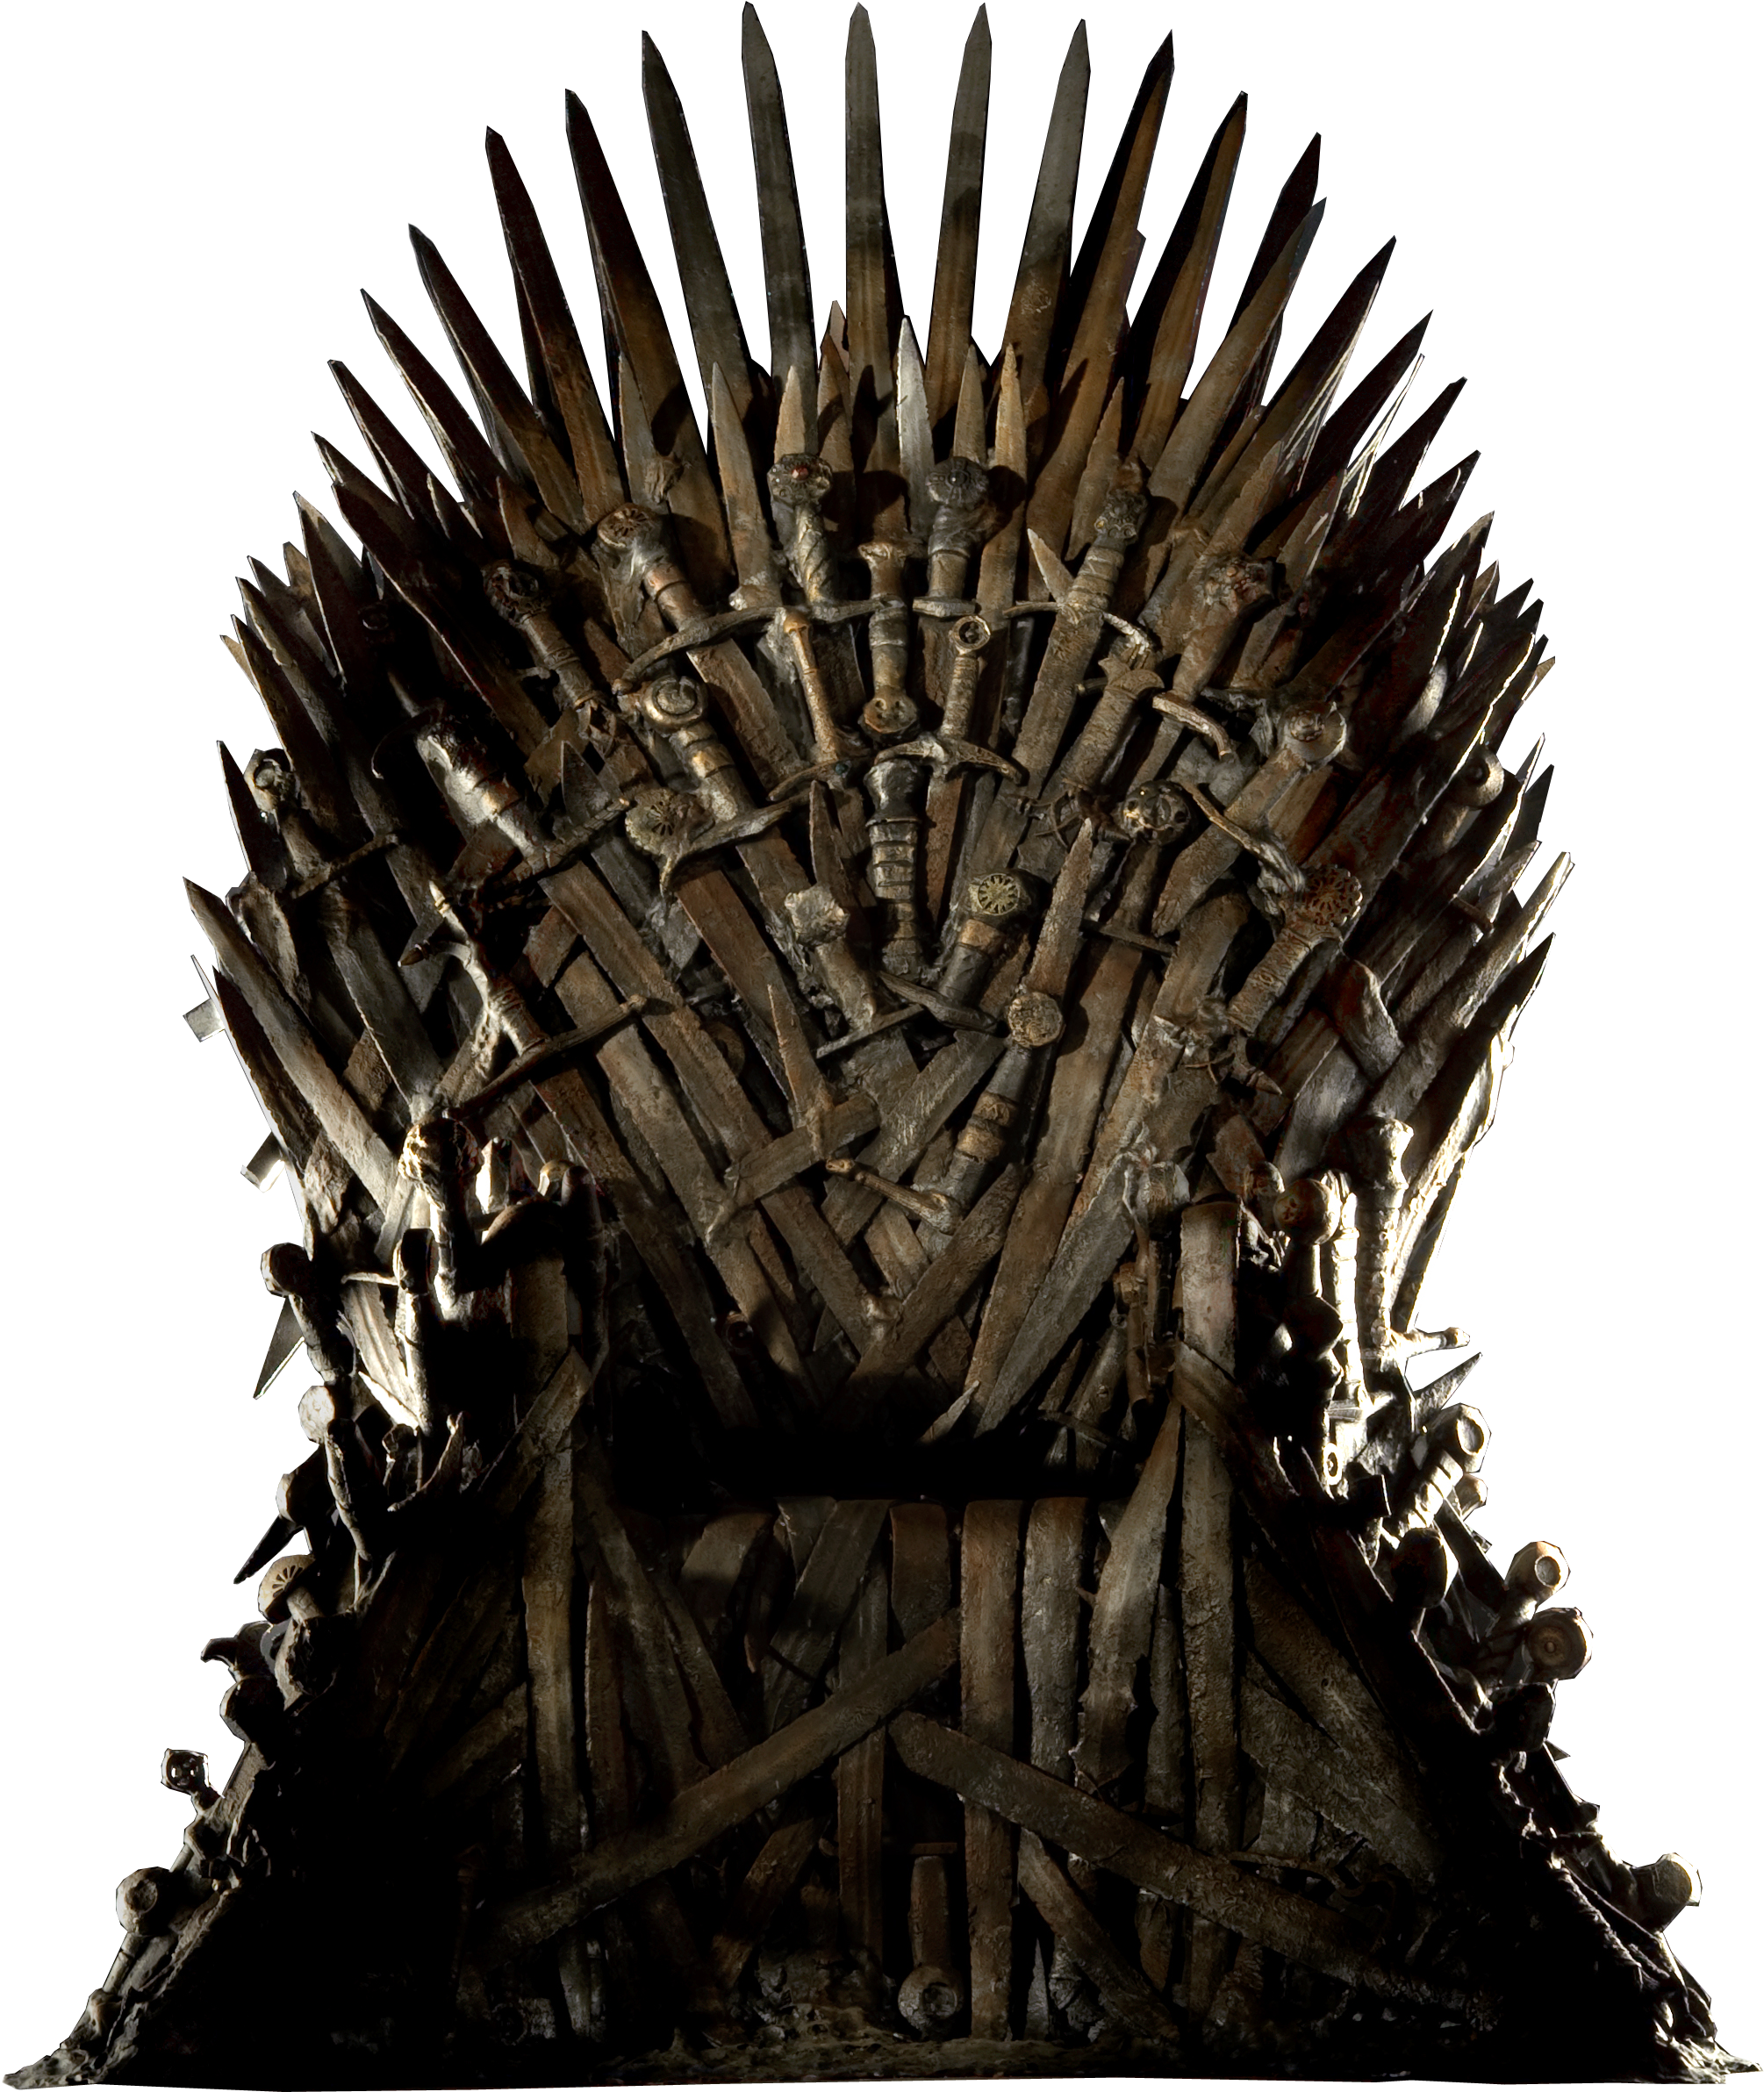 Game of thrones throne png. Download image with no